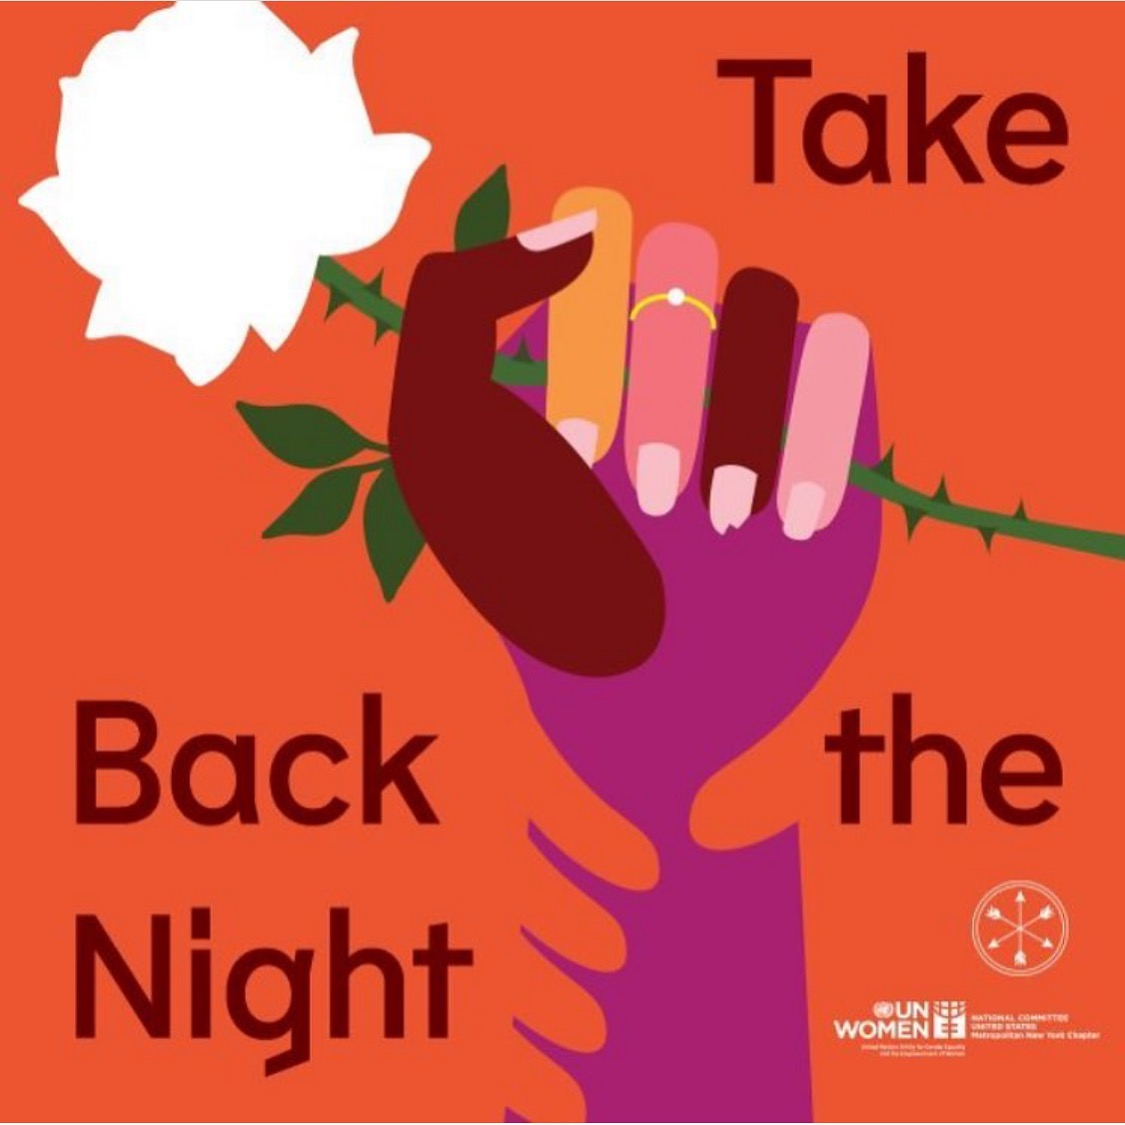 """The Young Professionals Committee of the Metro NY Chapter, USNC UN Women invite you to """"Take Back the Night"""", November 29th at Habitas for an evening of networking and consciousness-raising conversations dedicated towards ending gender-based violence.  Our event Take Back the Night falls during the 16 Days of Activism, """"Orange the World,"""" an annual global unifying campaign. The event draws inspiration from the international organization Take Back the Night, with the parallel mission of ending sexual, relationship and domestic violence.  Please wear your favorite orange and join us for an impactful interactive dialogue with a light reception. All are welcome, with proceeds supporting UN Women programs worldwide."""